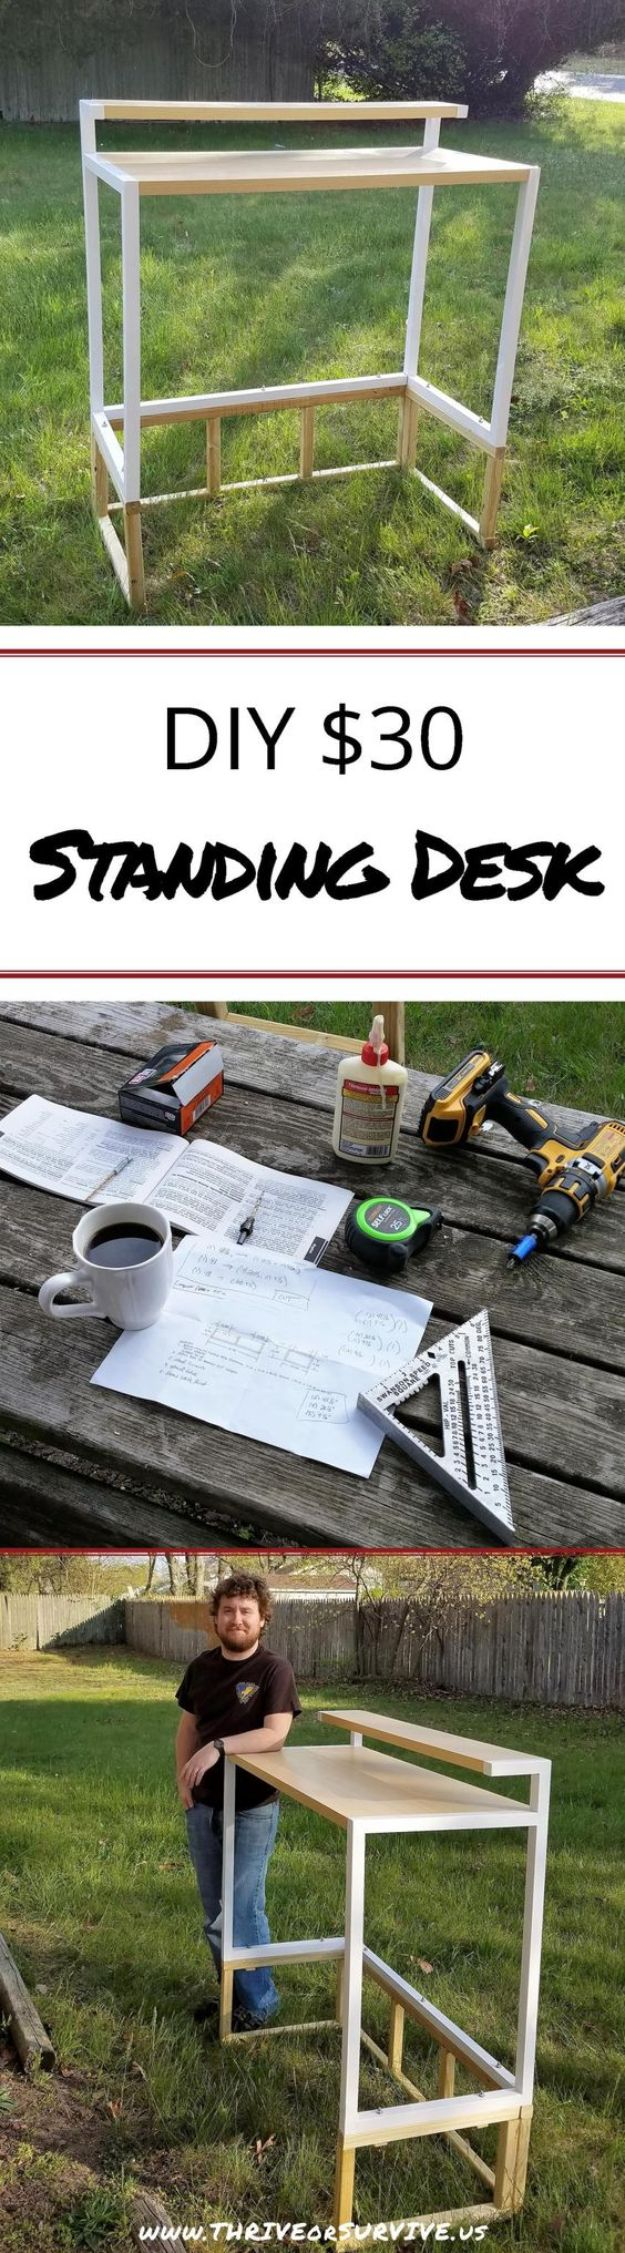 DIY Desks - DIY Standing Desk Transformation - Easy To Make Do It Yourself Desk Projects With Step by Step tutorials - Rustic Wood Pallet, Farmhouse Style Furniture, Modern Design and Upcycling Makeover Project Plans - Standing Computer Desks, Ideas for Small Spaces and Home Office - Cheap Desks With Built In Organization, With Storage, With Hutch and Filing Cabinets